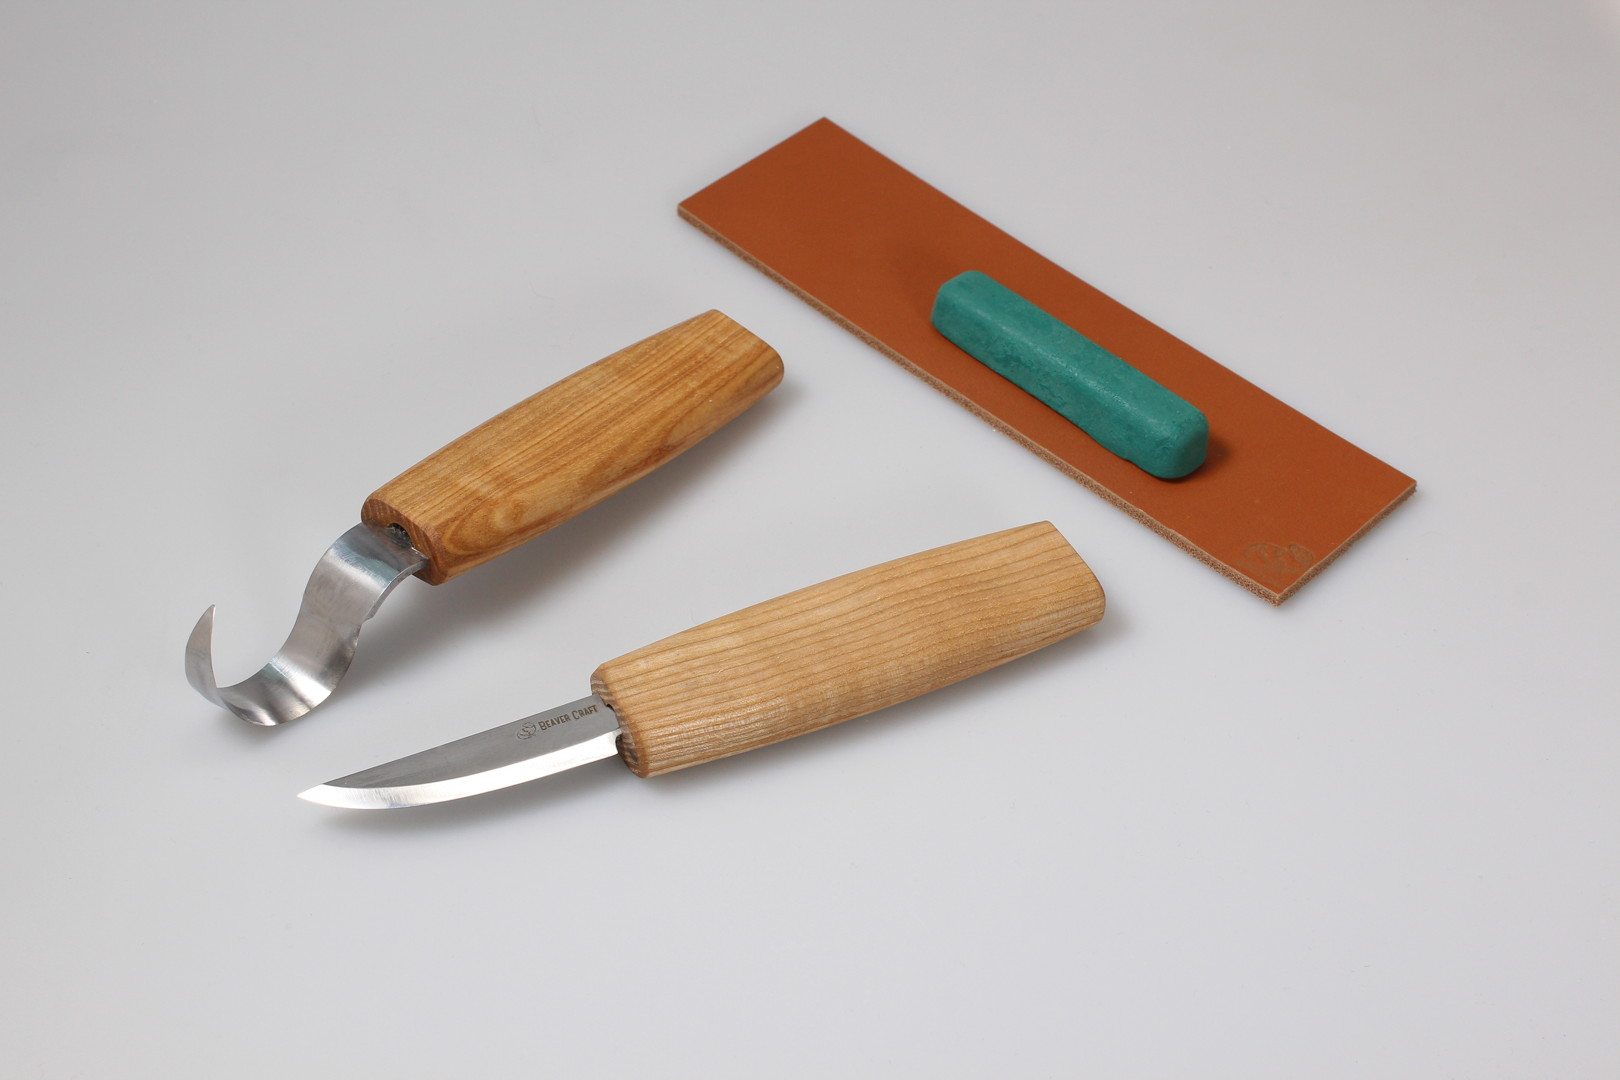 Tools sets – BeaverCraft Wood Carving & Green Woodworking